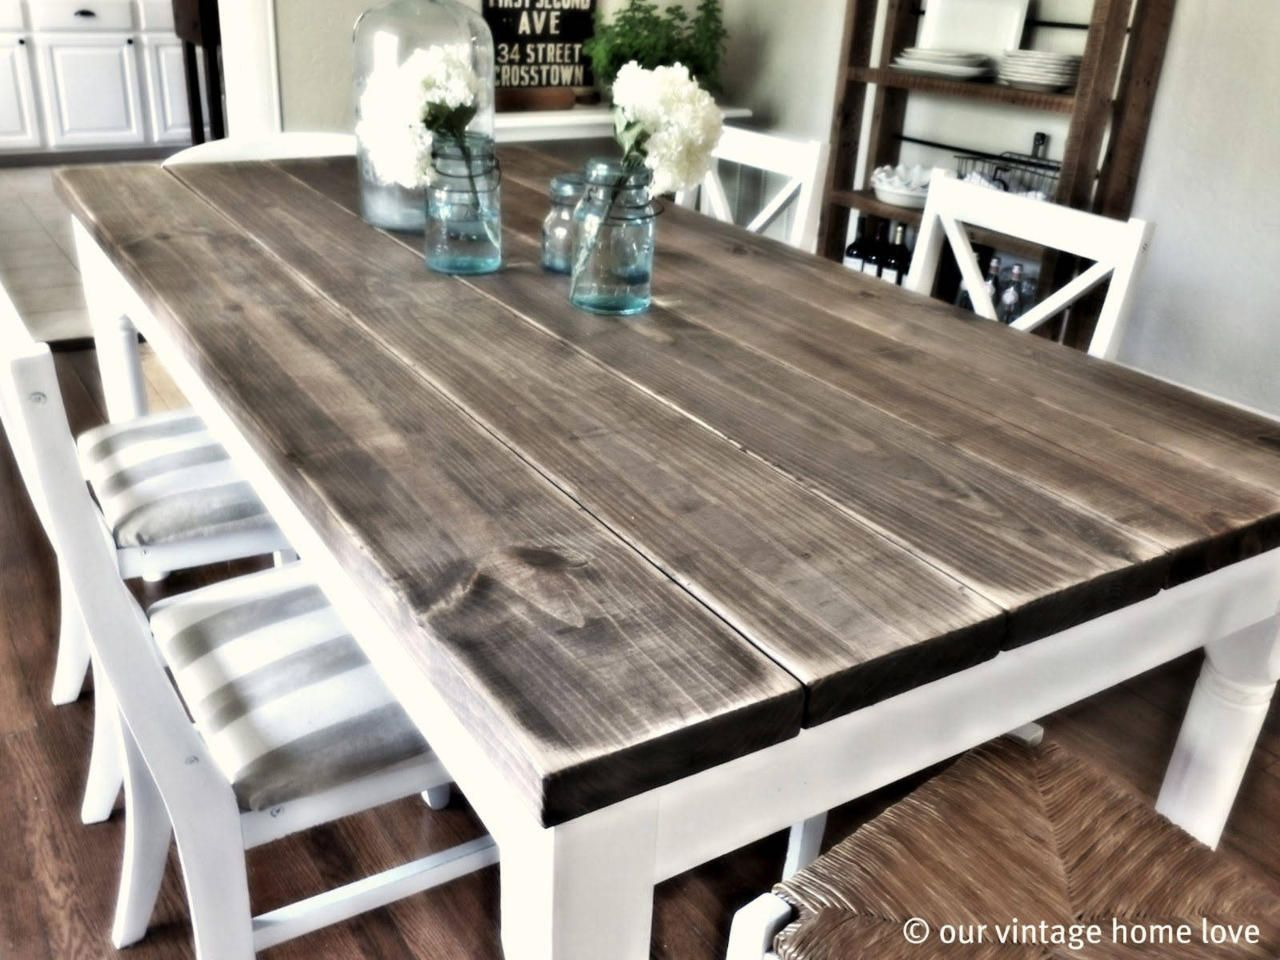 Merveilleux Dining Room Table Tutorial, Wood From Loweu0027s Or Home Depot, Paint, Stain .